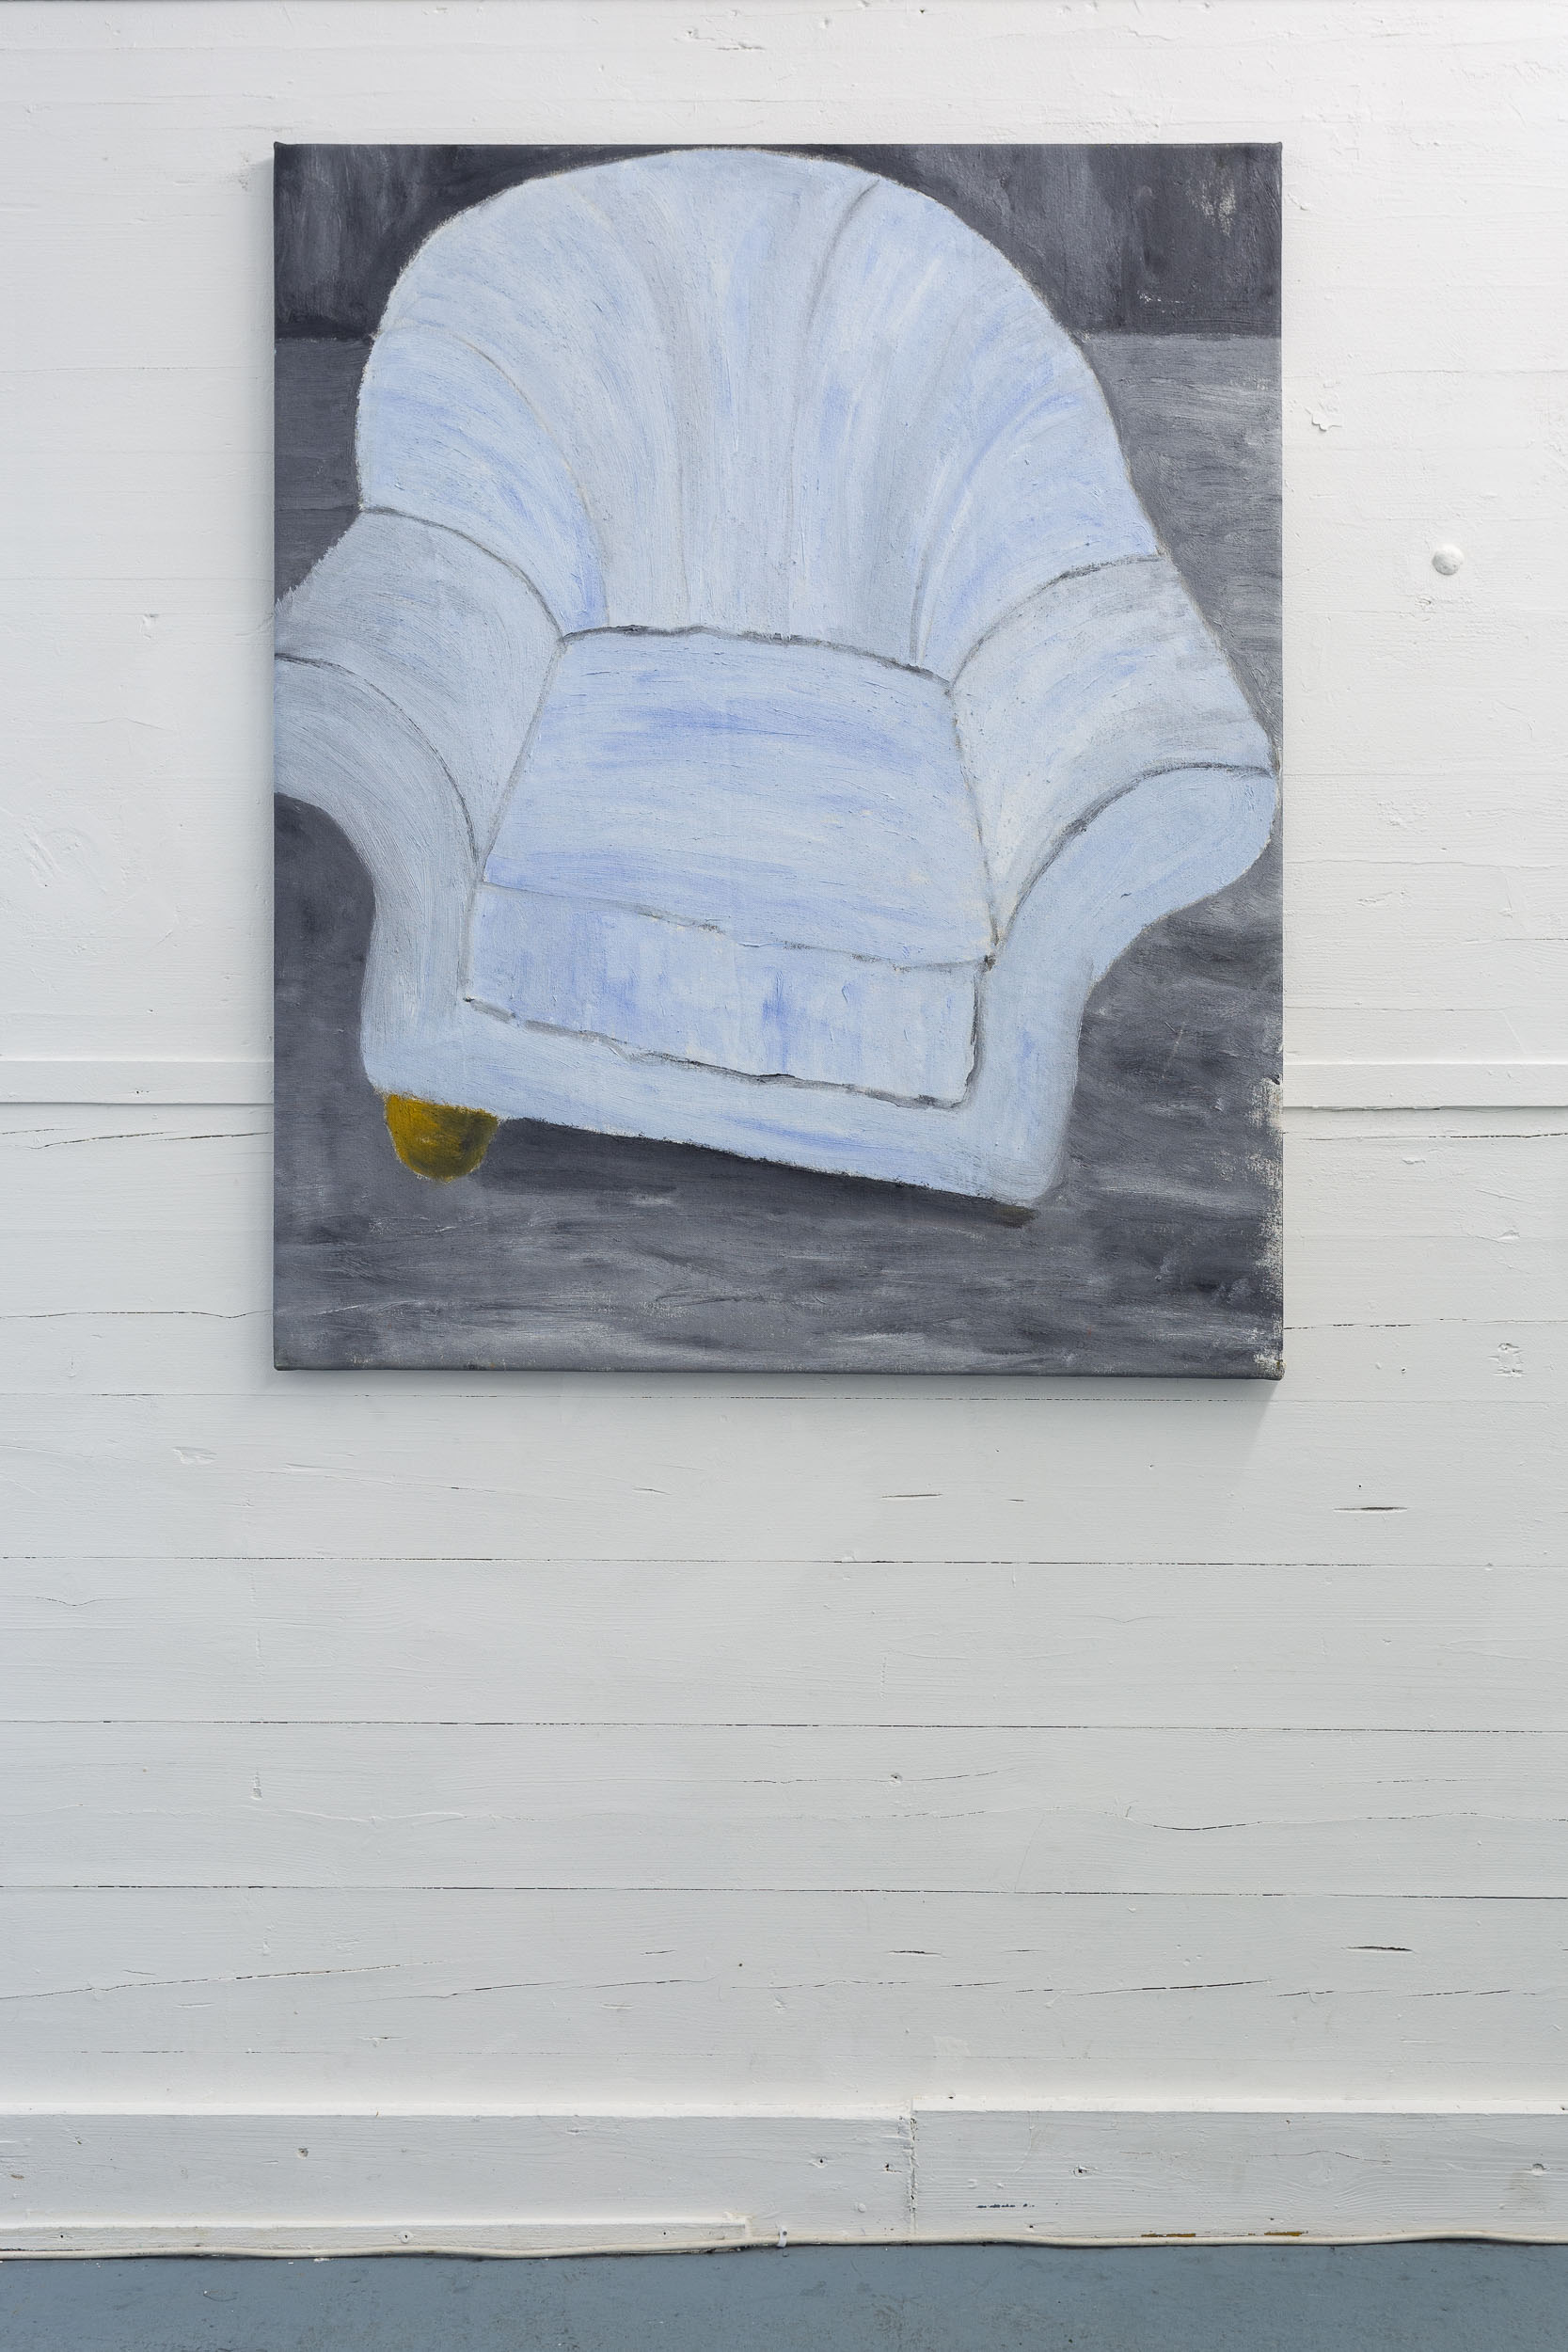 Dieter Hall,  Blue Armchair,  2015, Oil on canvas, 111 x 90 cm  Photo: Kilian Bannwart